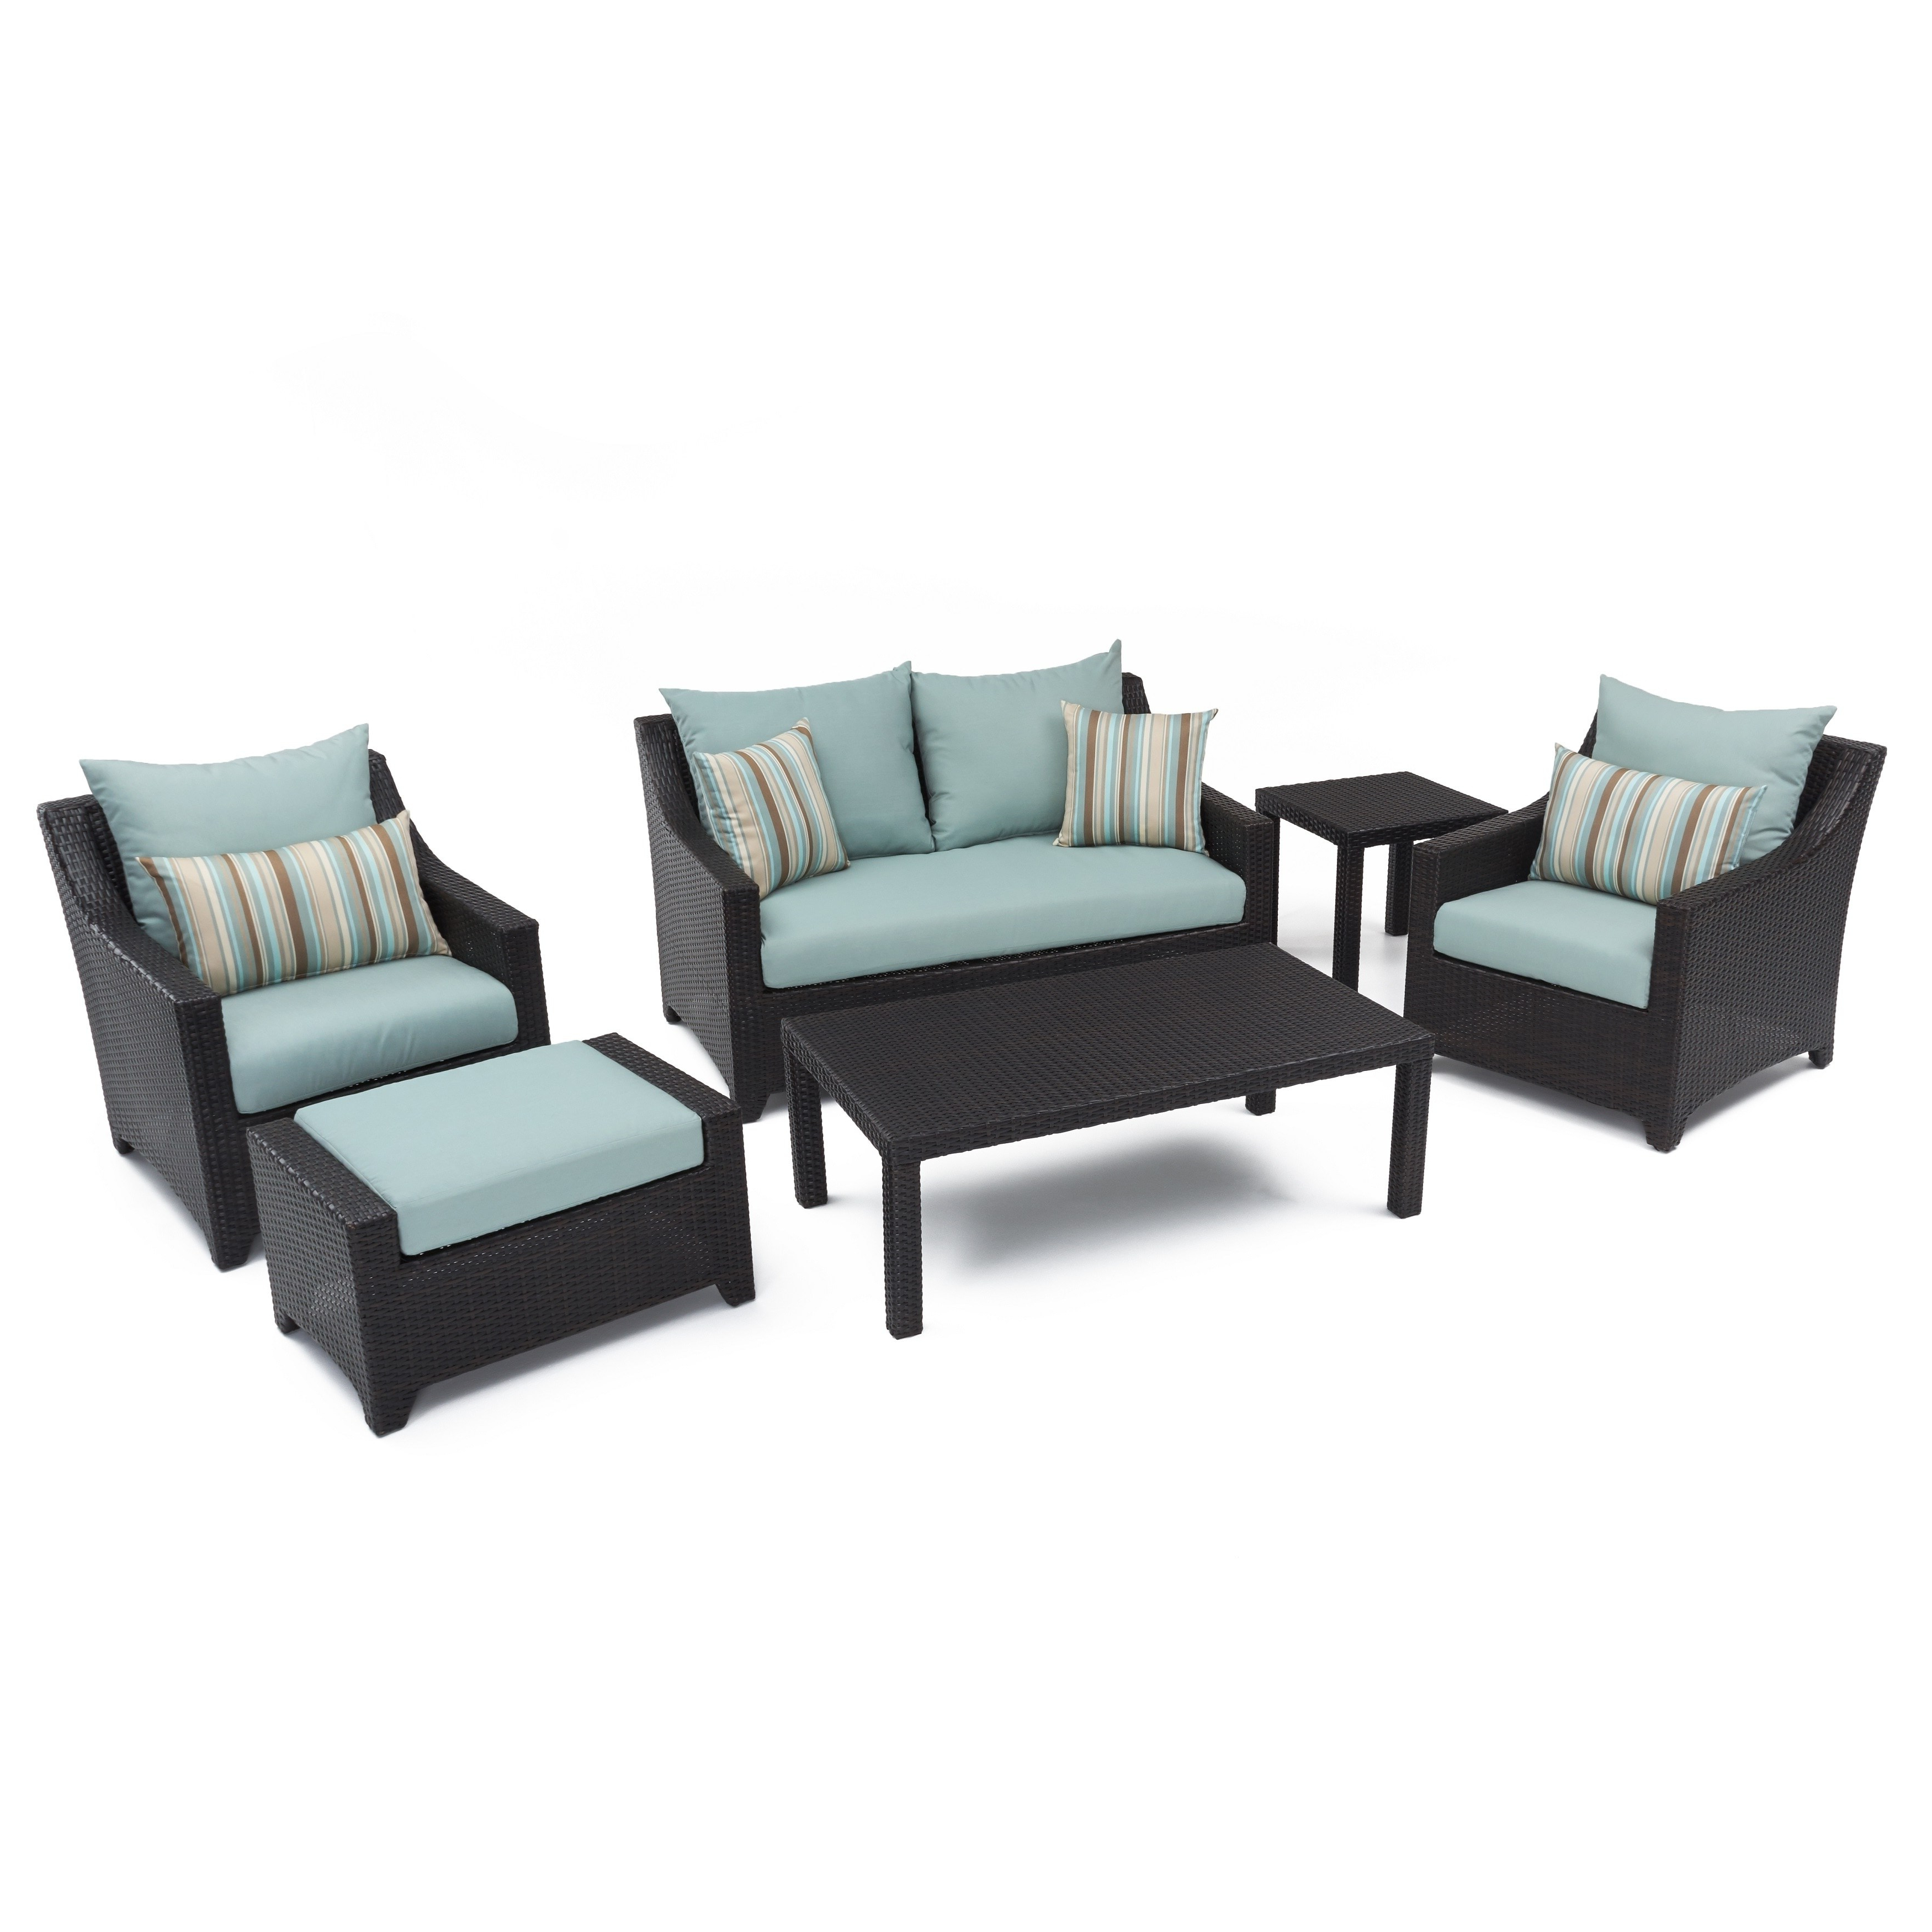 Famous Cosco Outdoor Aluminum Chaise Lounge Chairs Inside 20 Luxury Design For Costco Outdoor Aluminum Chaise Lounge (View 22 of 25)